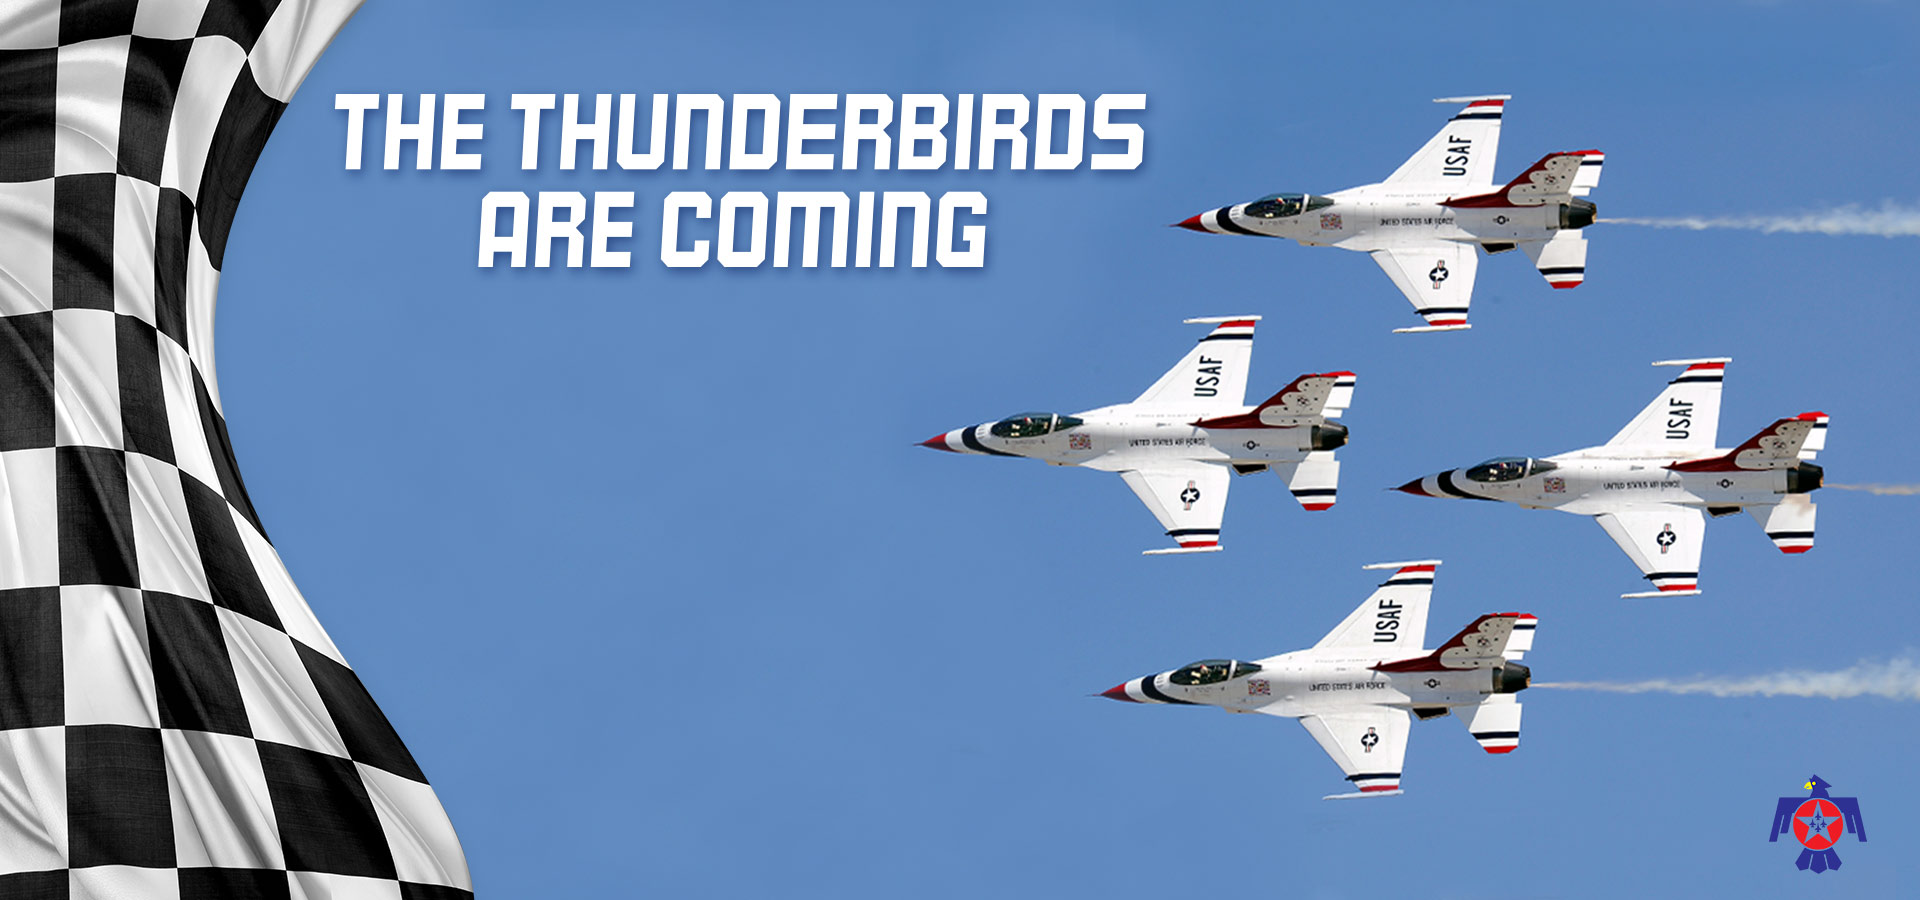 The Thunderbirds are Coming!